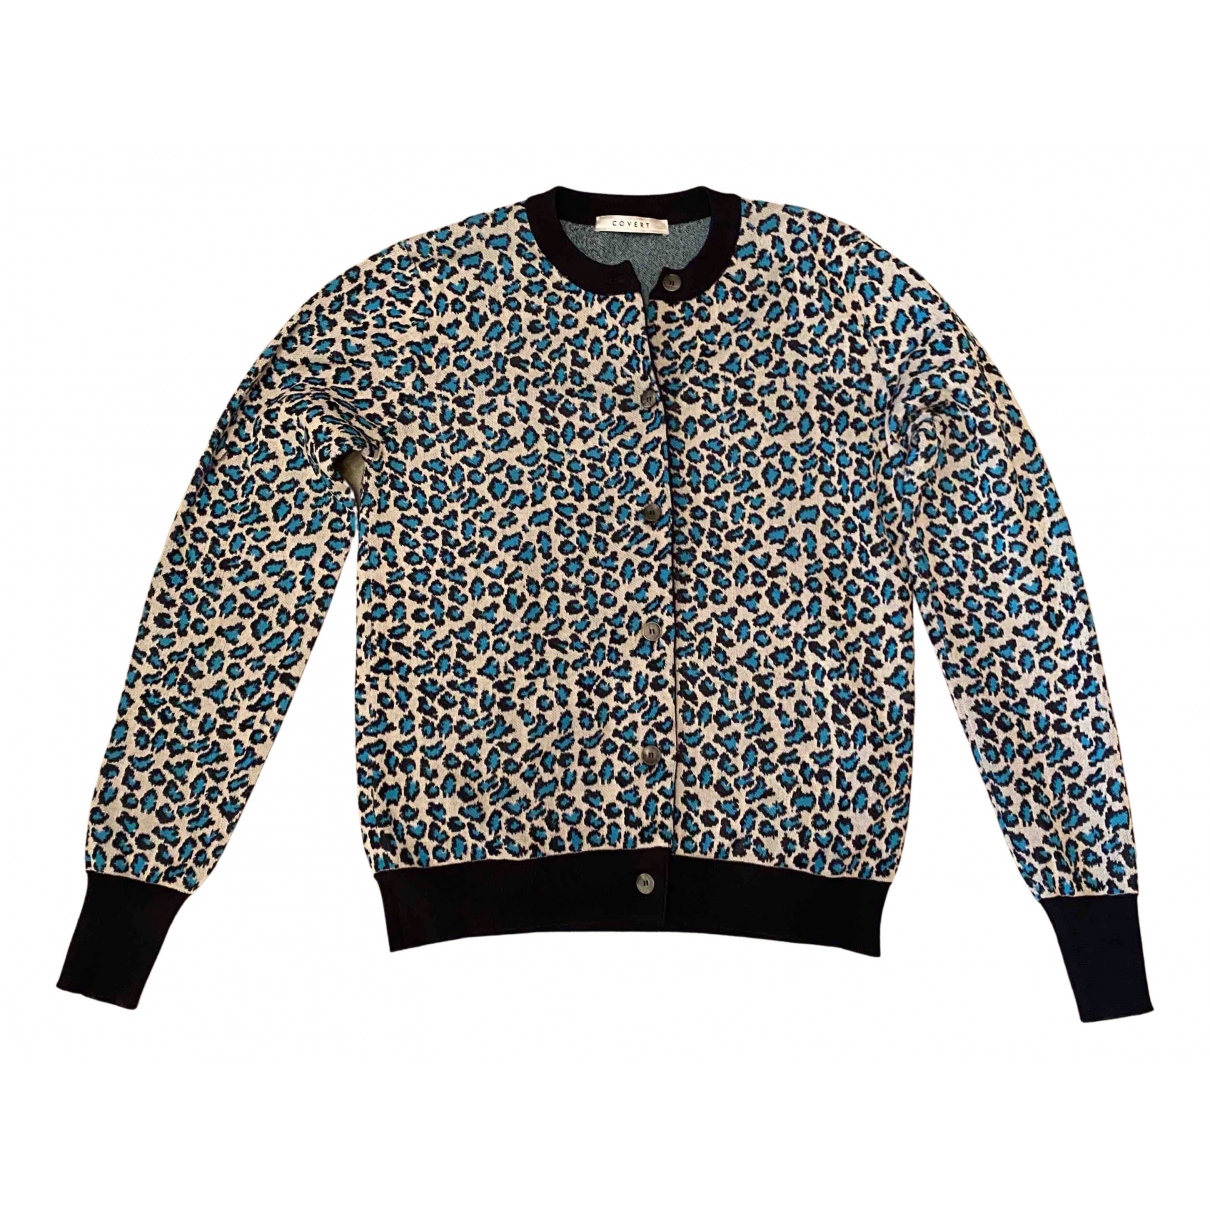 Non Signé / Unsigned N Multicolour Cotton Knitwear for Women One Size International